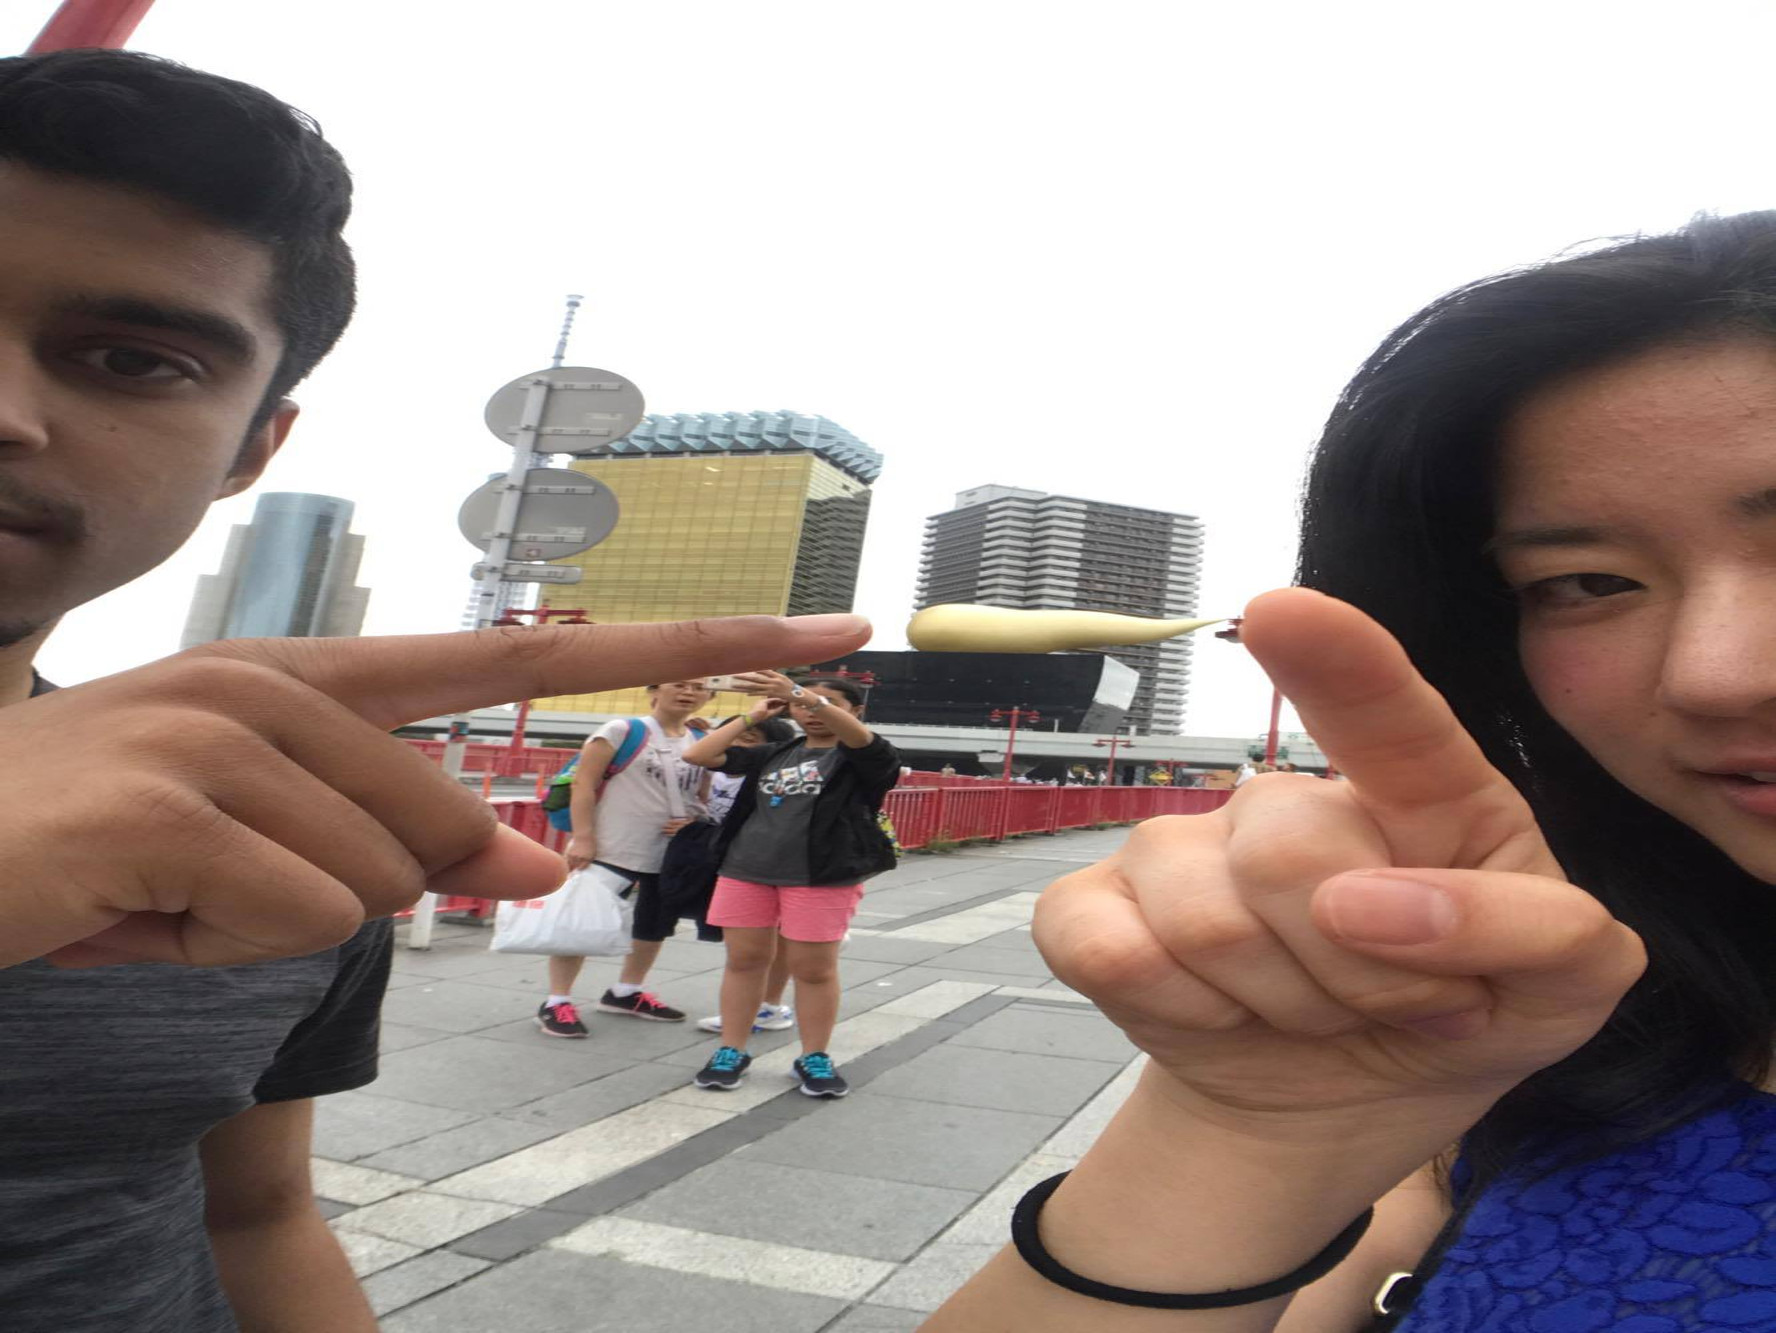 Kazuha and I pointing to what seems like a structure resembling the poop emoji.